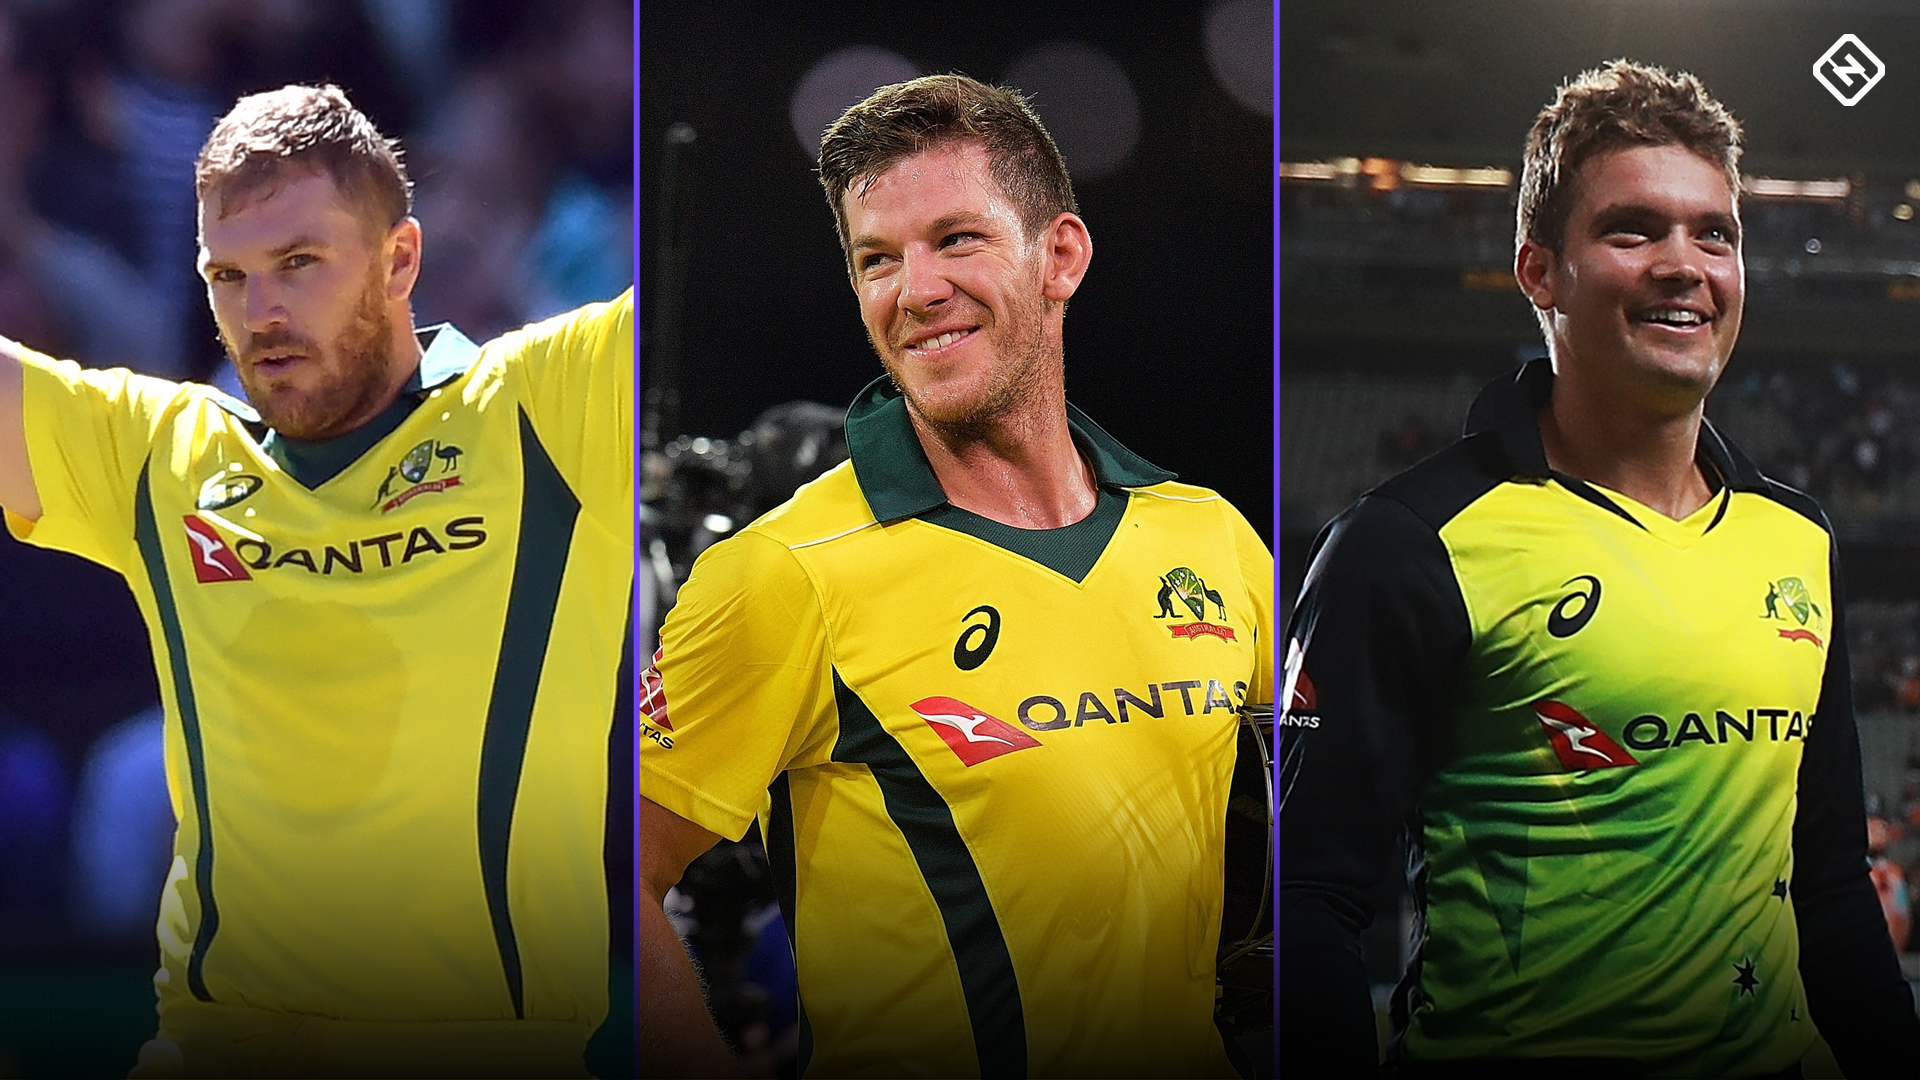 Tim Paine named skipper for ODI, Aaron Finch to lead in T20Is